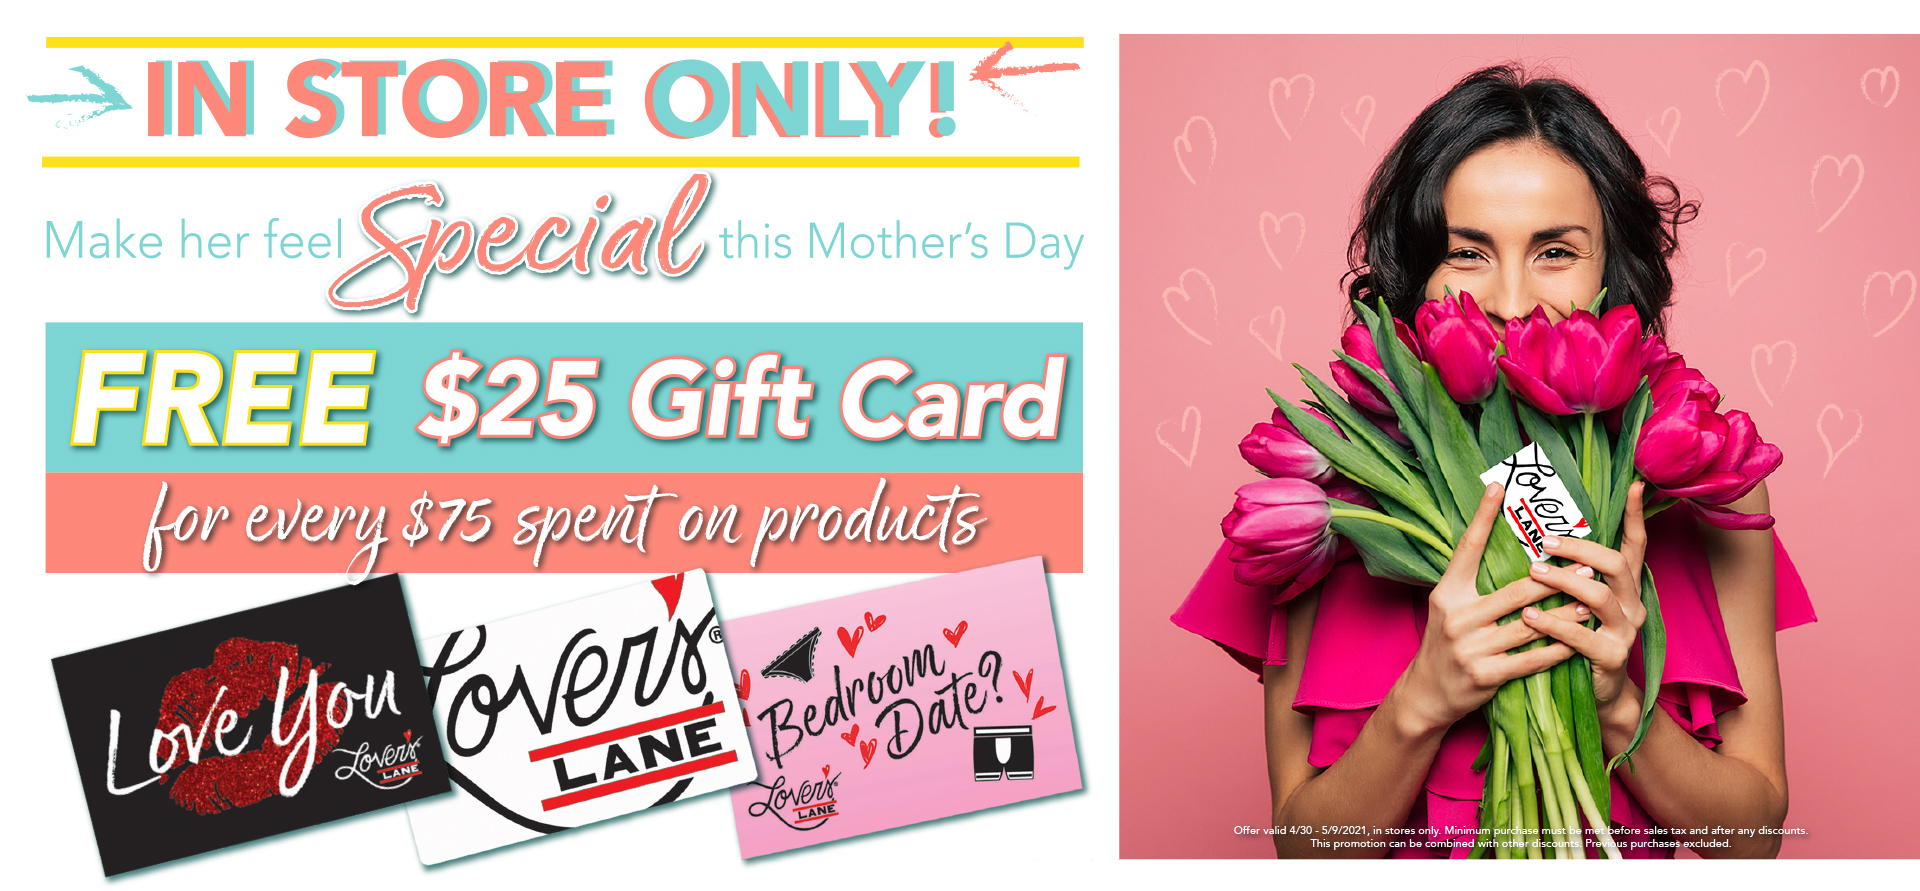 Make her feel special this Mother's Day - FREE $25 Gift Card for every $75 spent on products! - Offer valid 4/30 - 5/9/2021, in stores only. Minimum purchase must be met before sales tax and after any discounts.  *See Promotions page for details